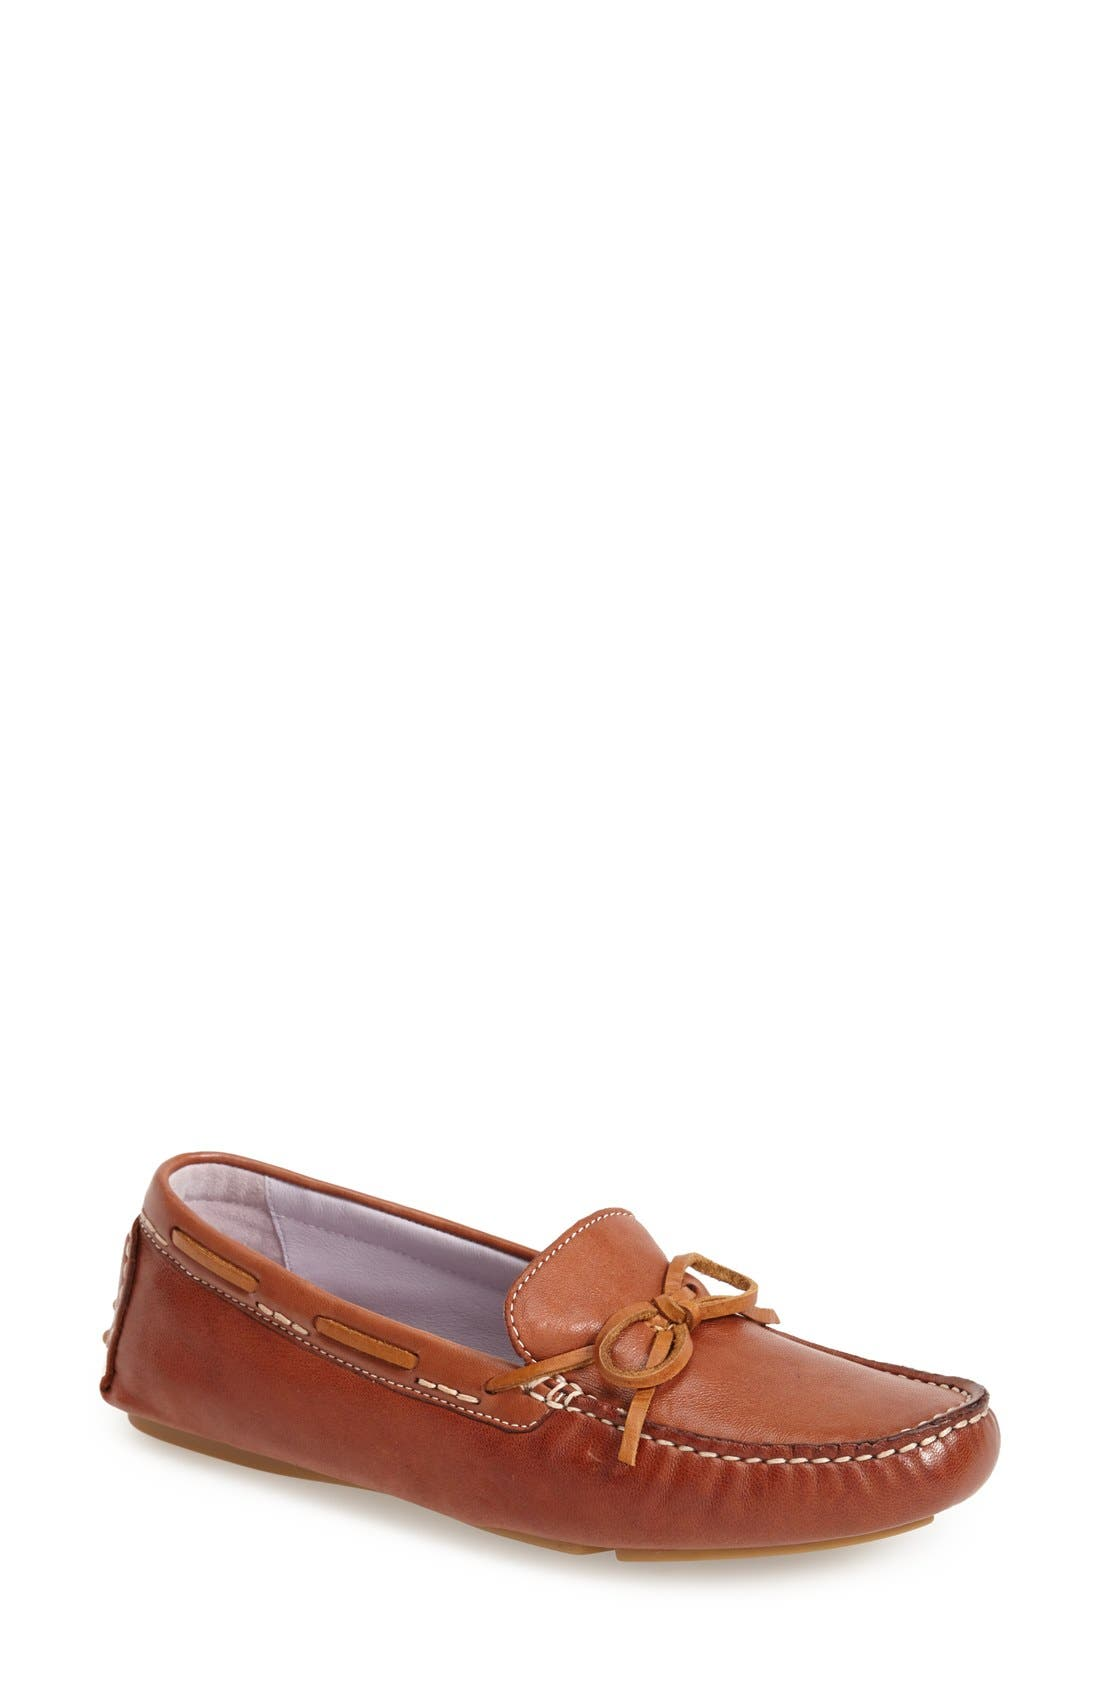 Alternate Image 1 Selected - Johnston & Murphy 'Maggie' Moccasin